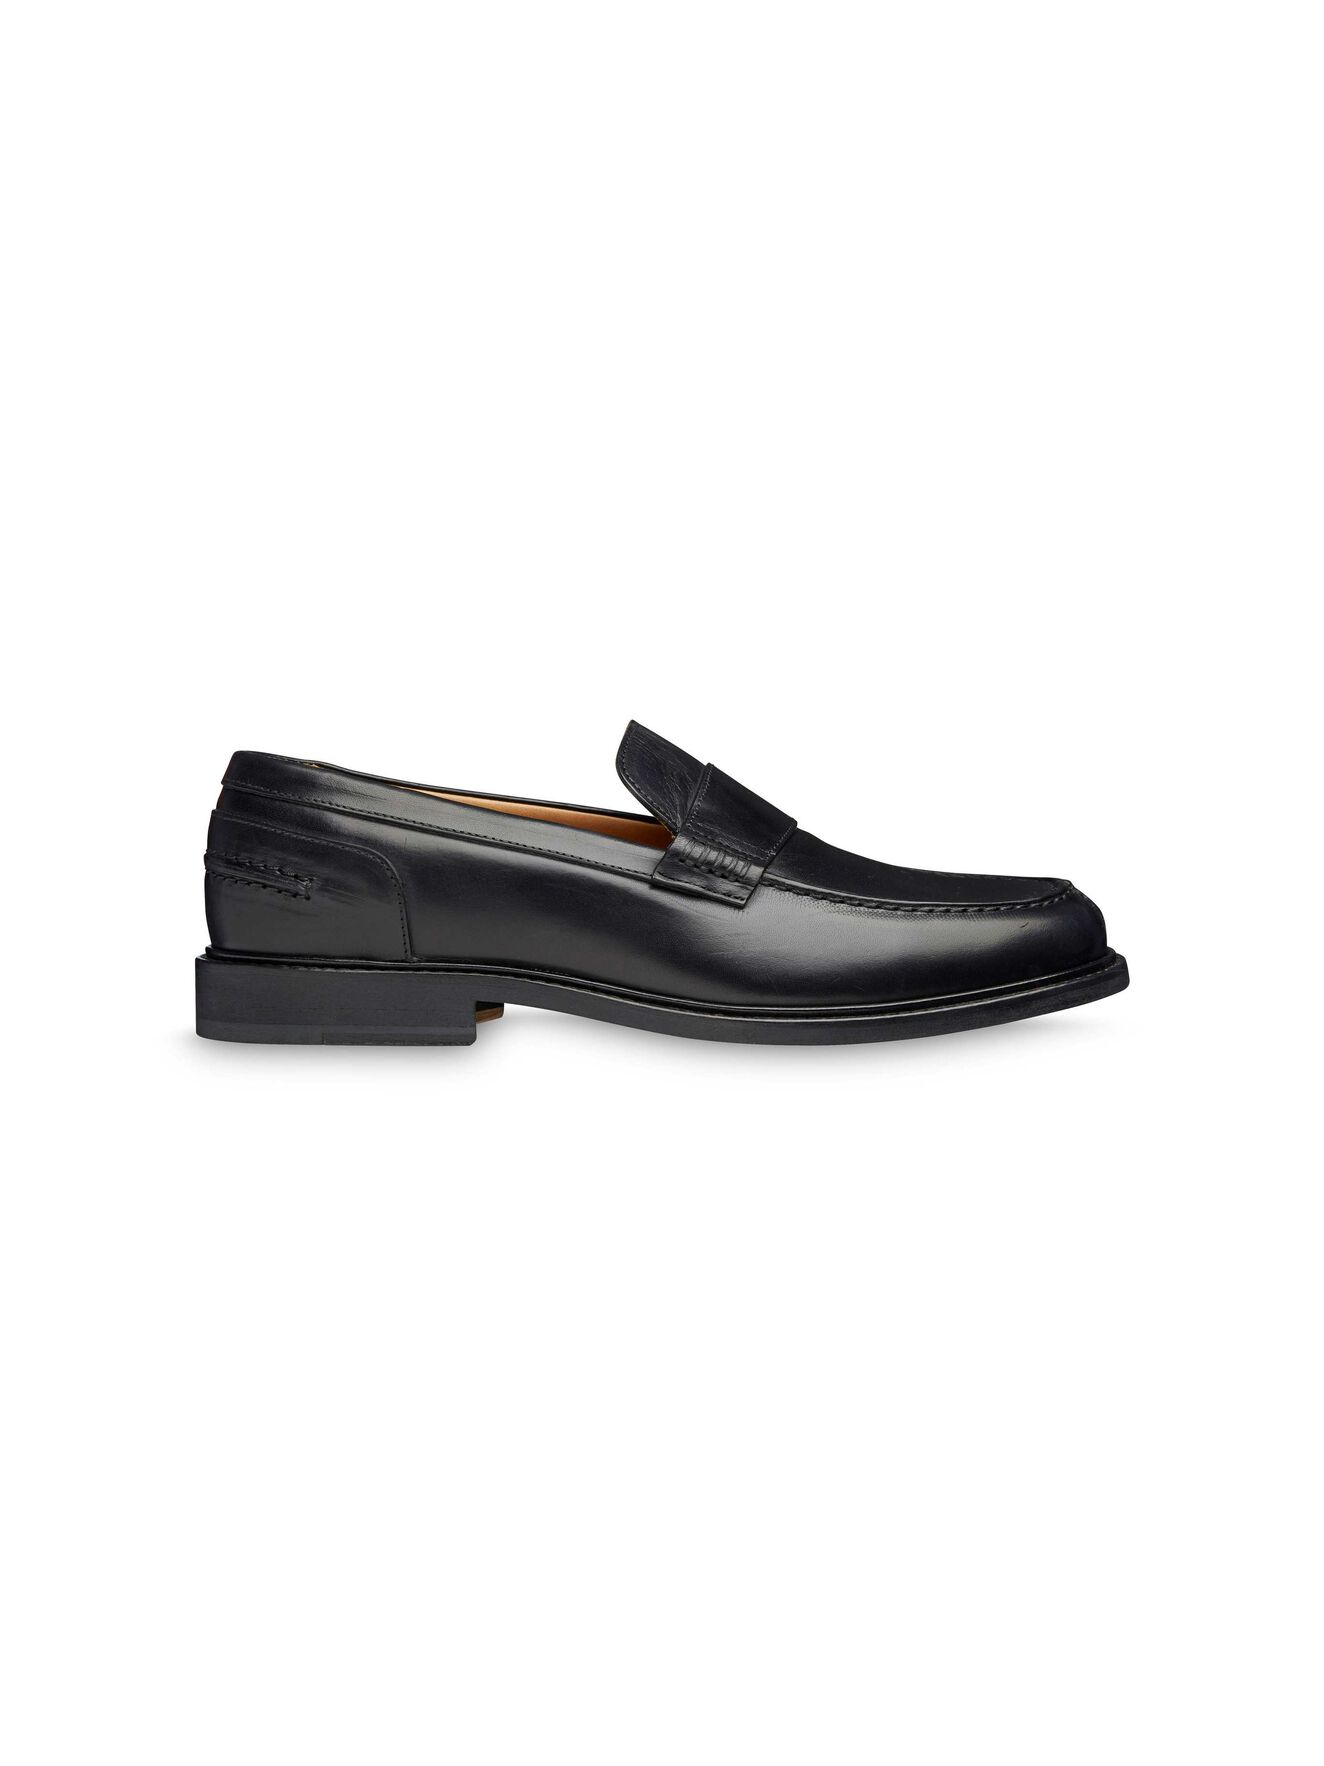 Cevin Loafer in Black from Tiger of Sweden